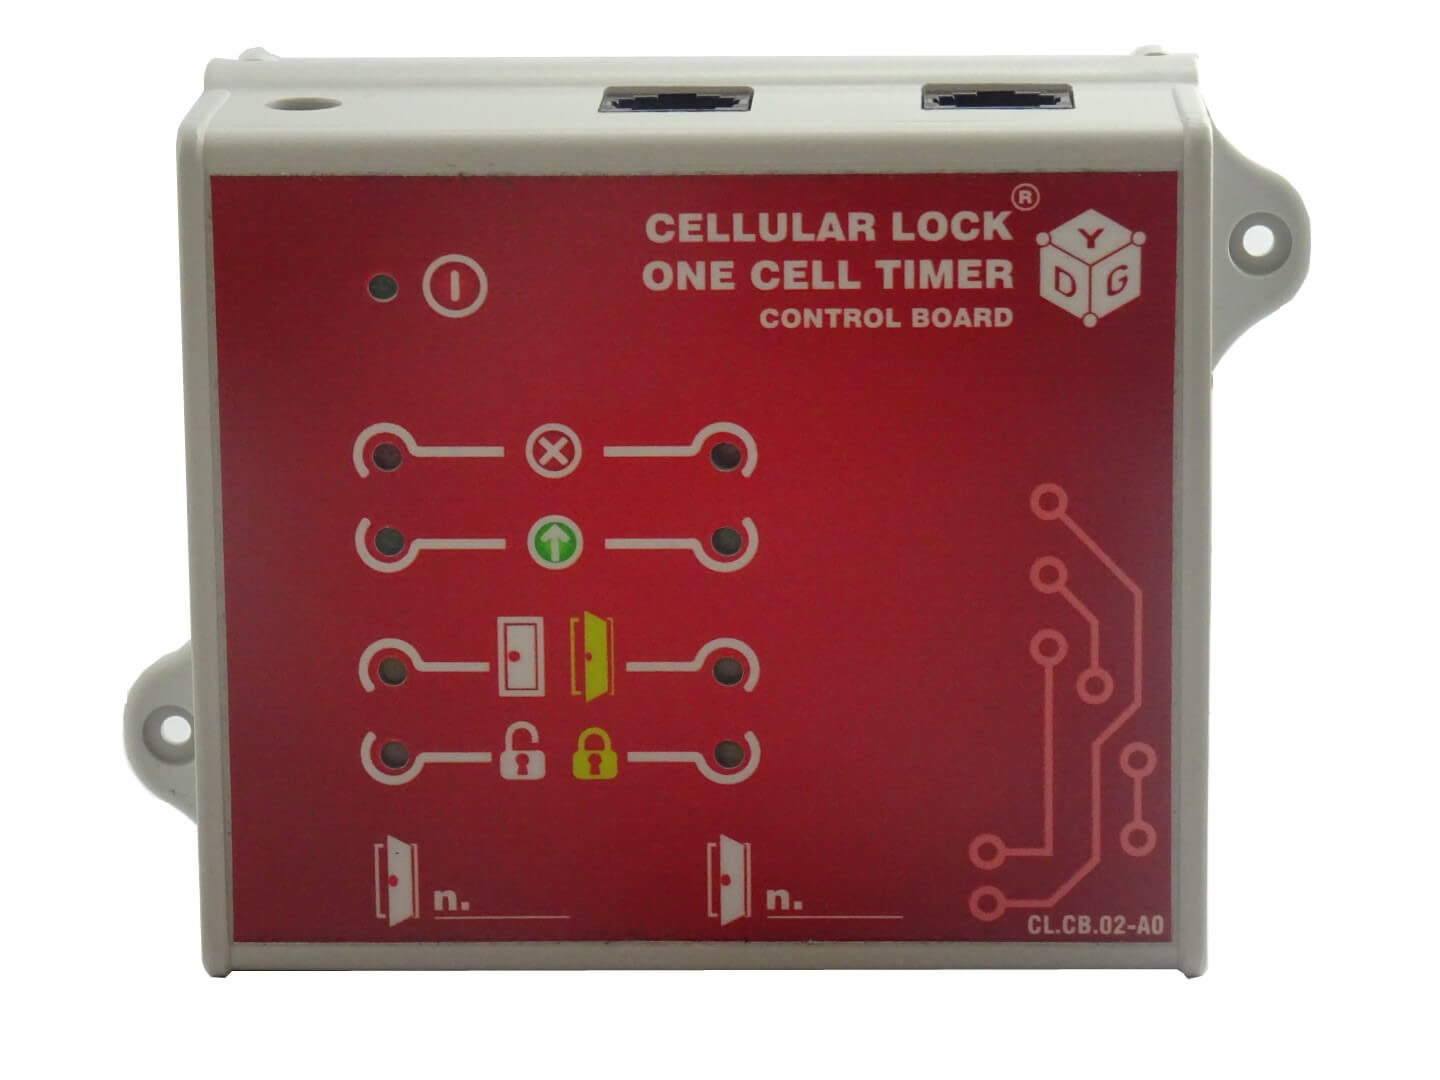 CL.CB.02 CELLULAR LOCK® – ONE CELL TIMER.